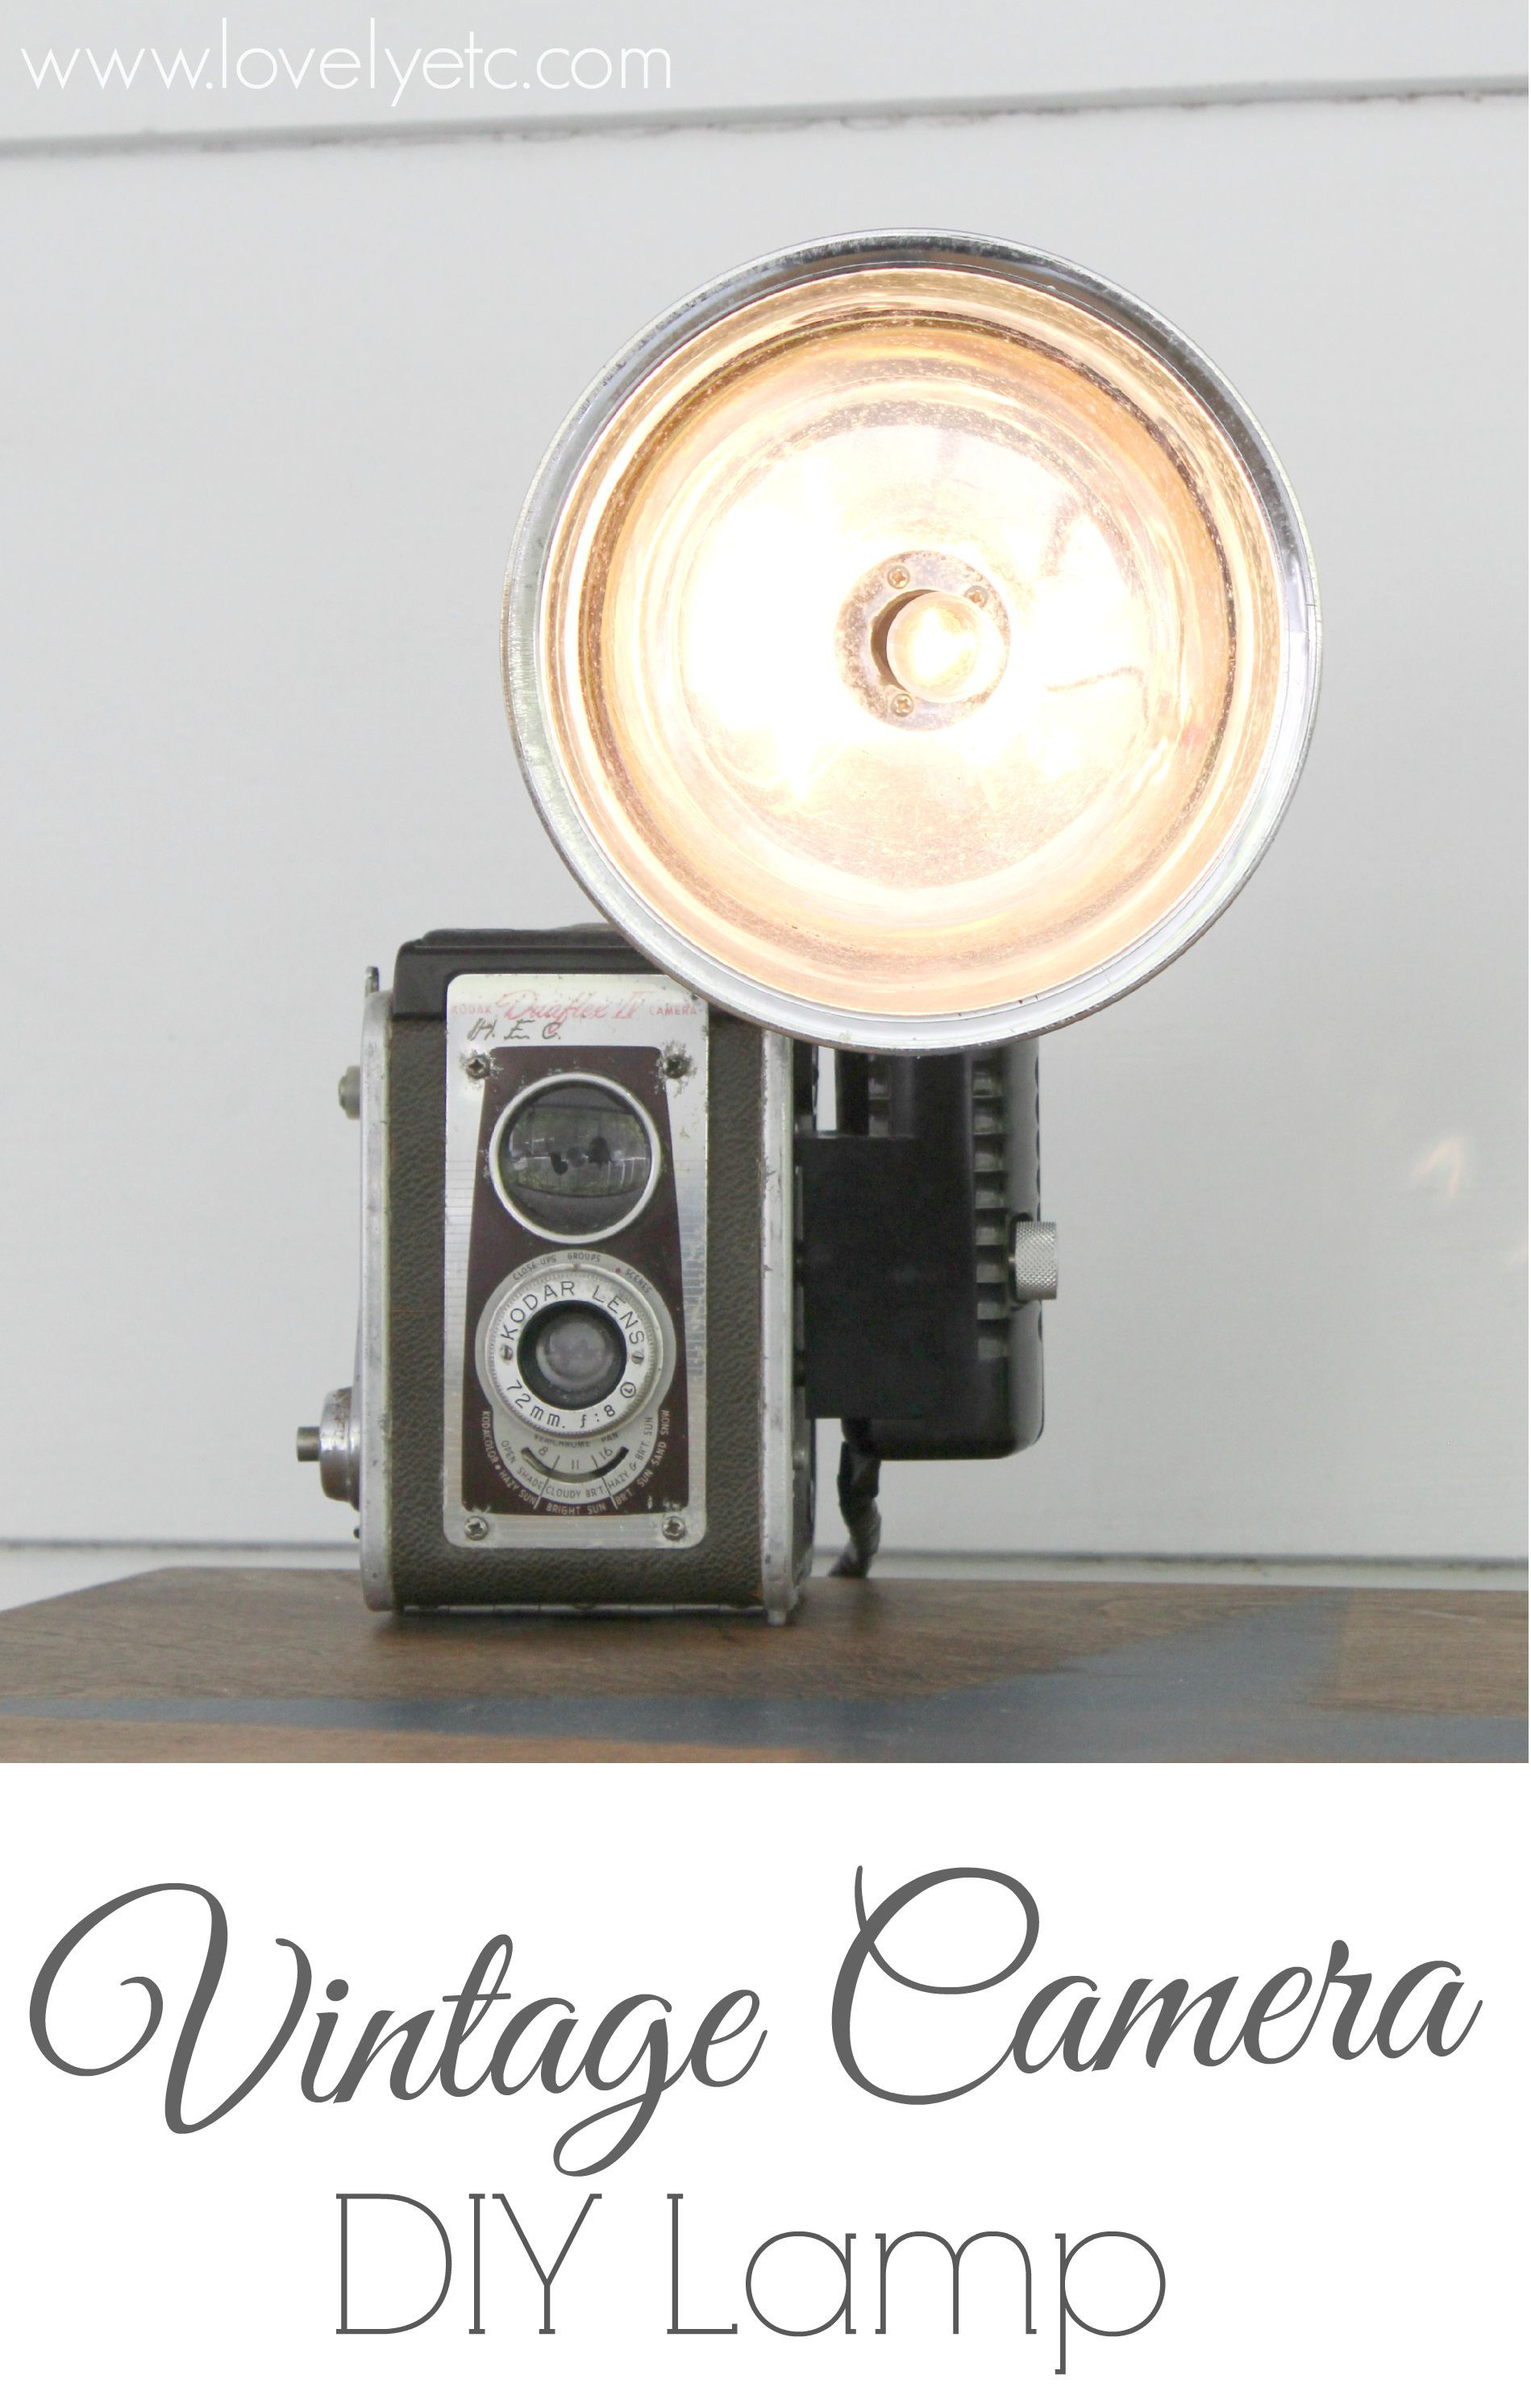 How To Turn A Vintage Camera Into A Lamp Lovely Etc Diy Lamp Old Camera Vintage Camera